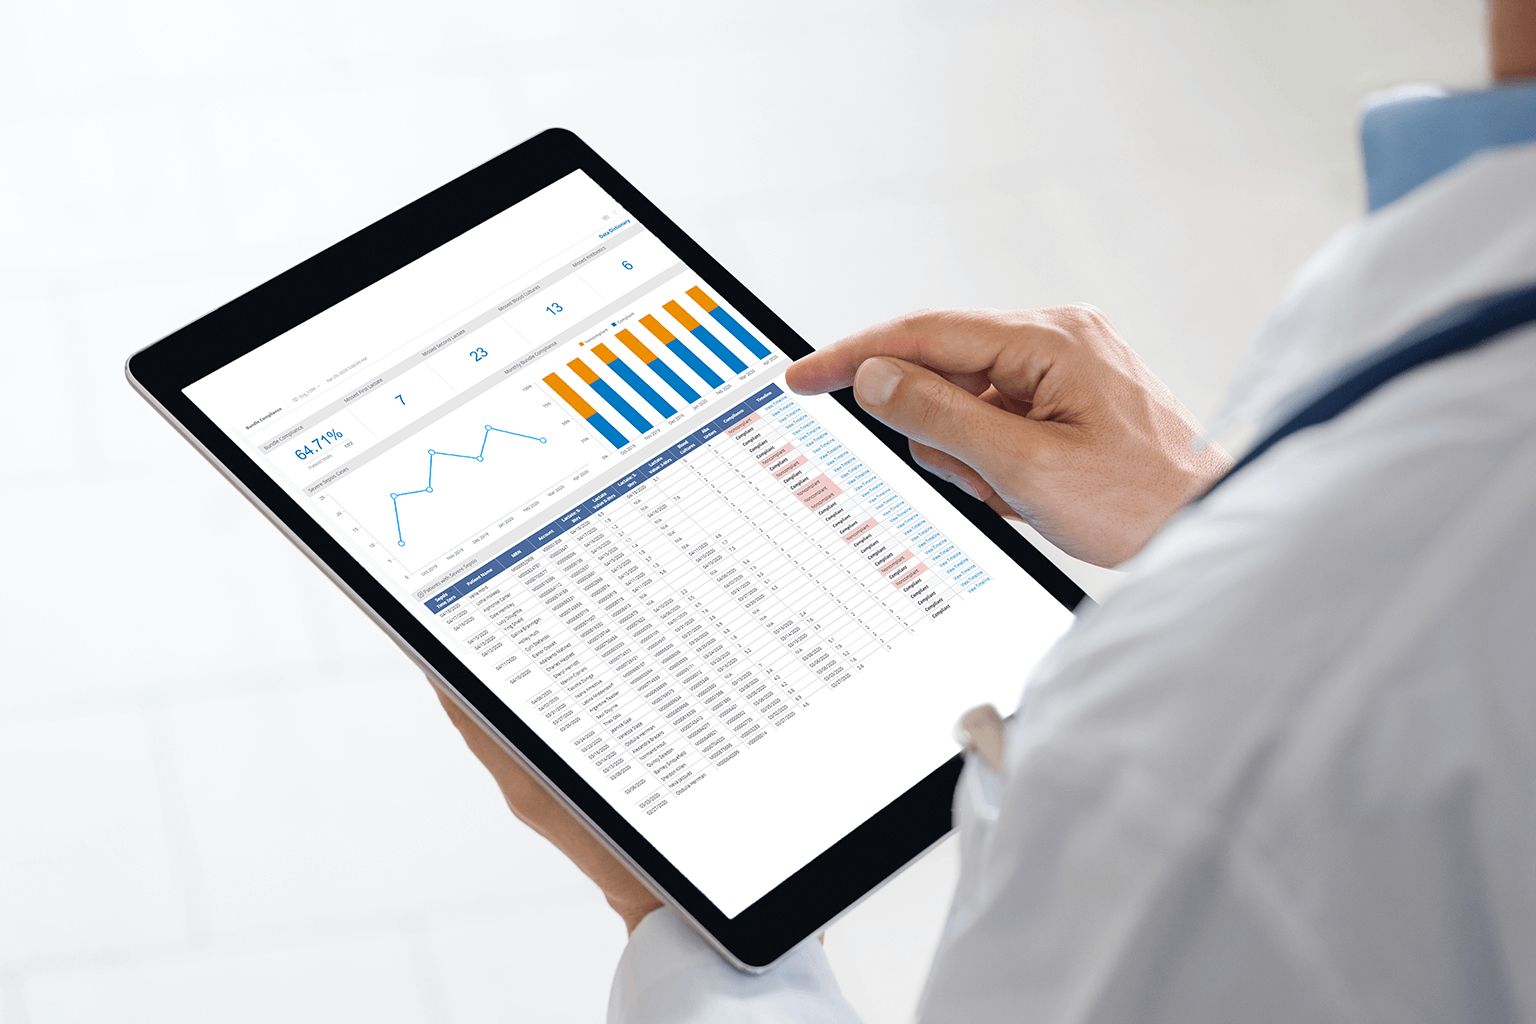 POC-Advisor-Bundle-Compliance-Analytics-on-Ipad